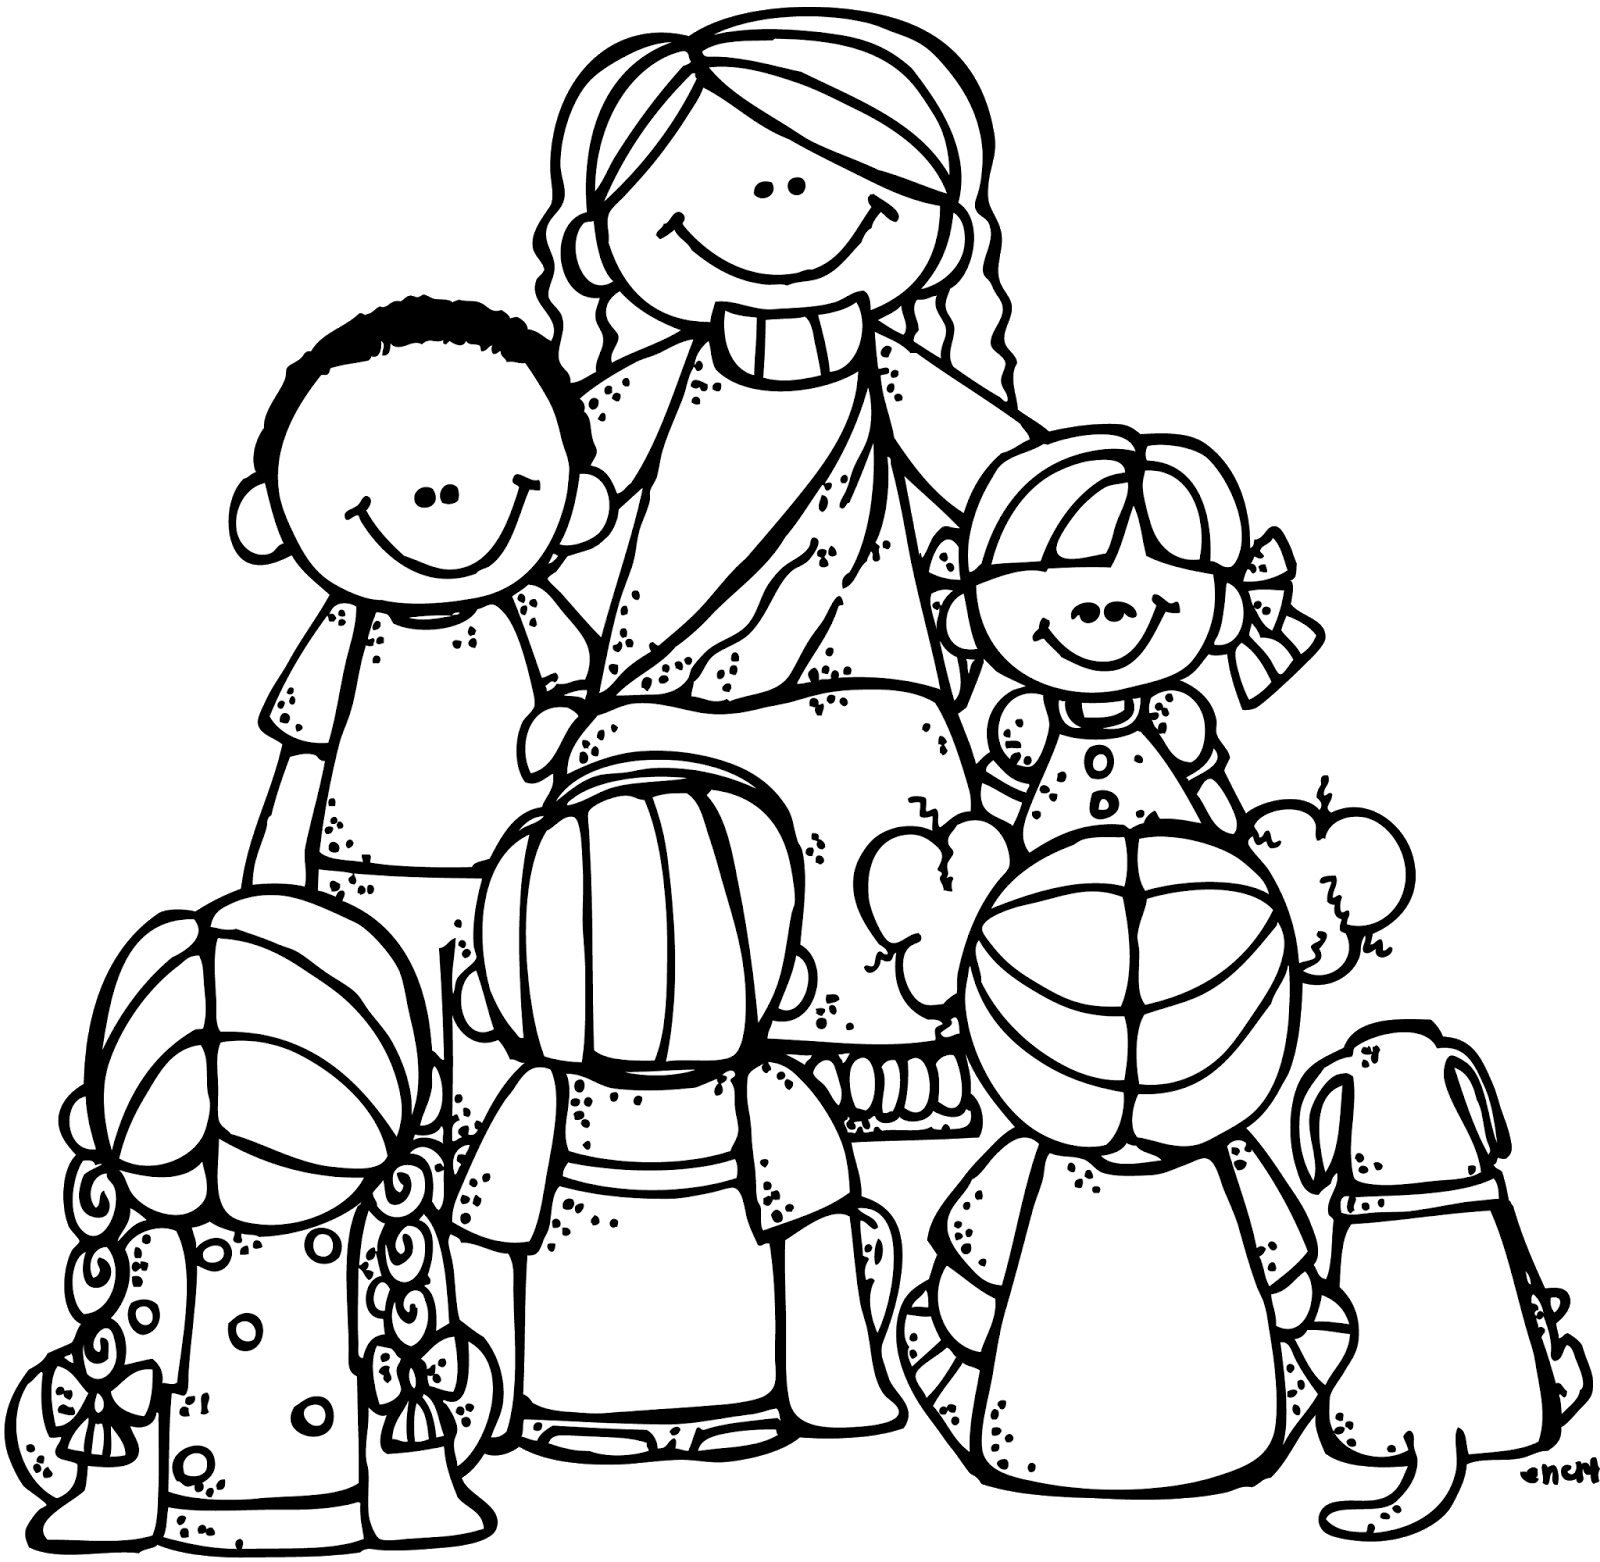 jesus and the children coloring page - melonheadz lds illustrating general conference goodies